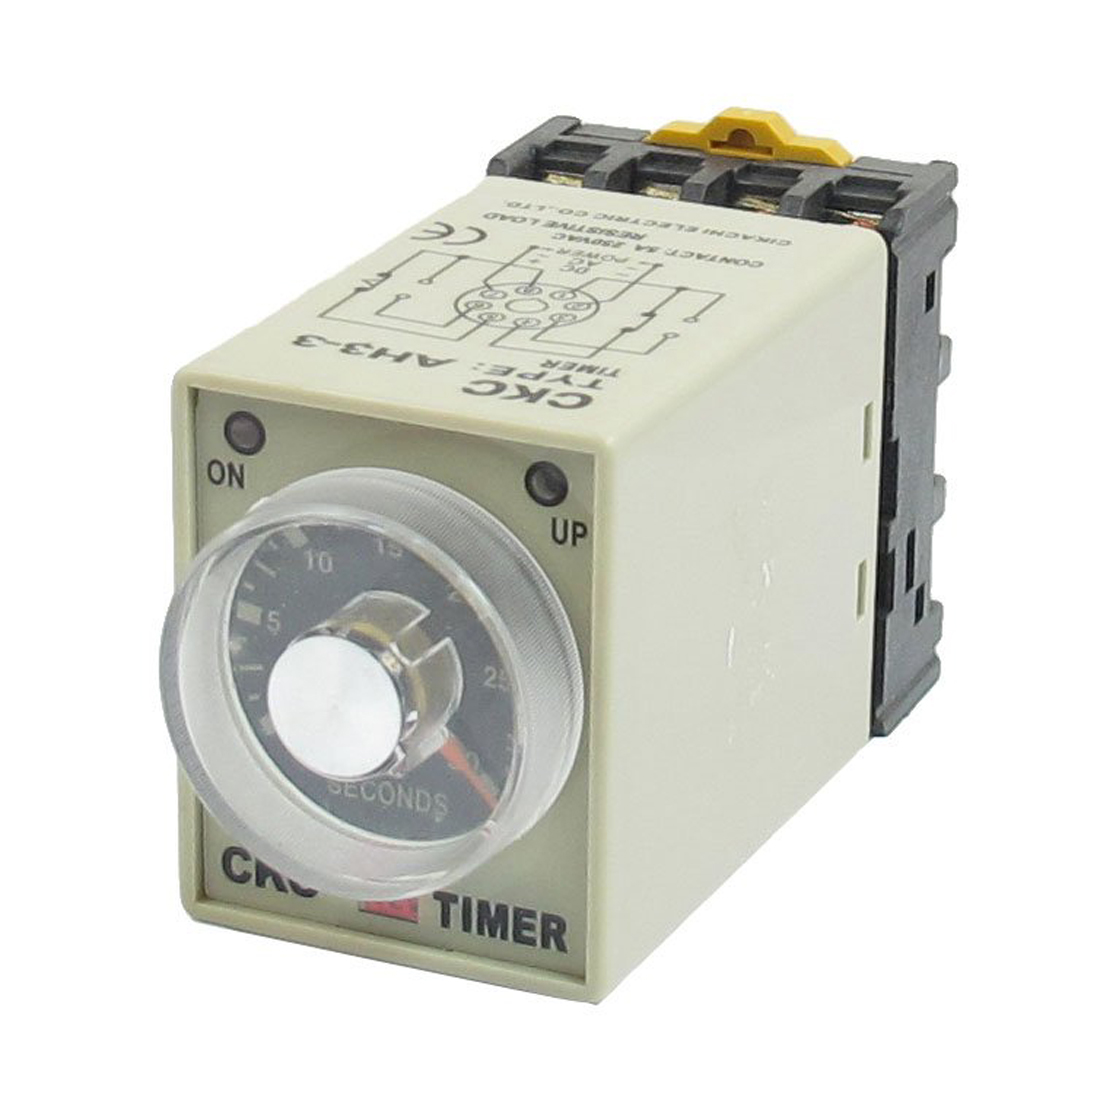 DHDL-DC 12V 0-30 Seconds 30s Electric Delay Timer Timing Relay DPDT 8P w Base szs hot dc 12v 0 30 seconds 30s electric delay timer timing relay dpdt 8p w base